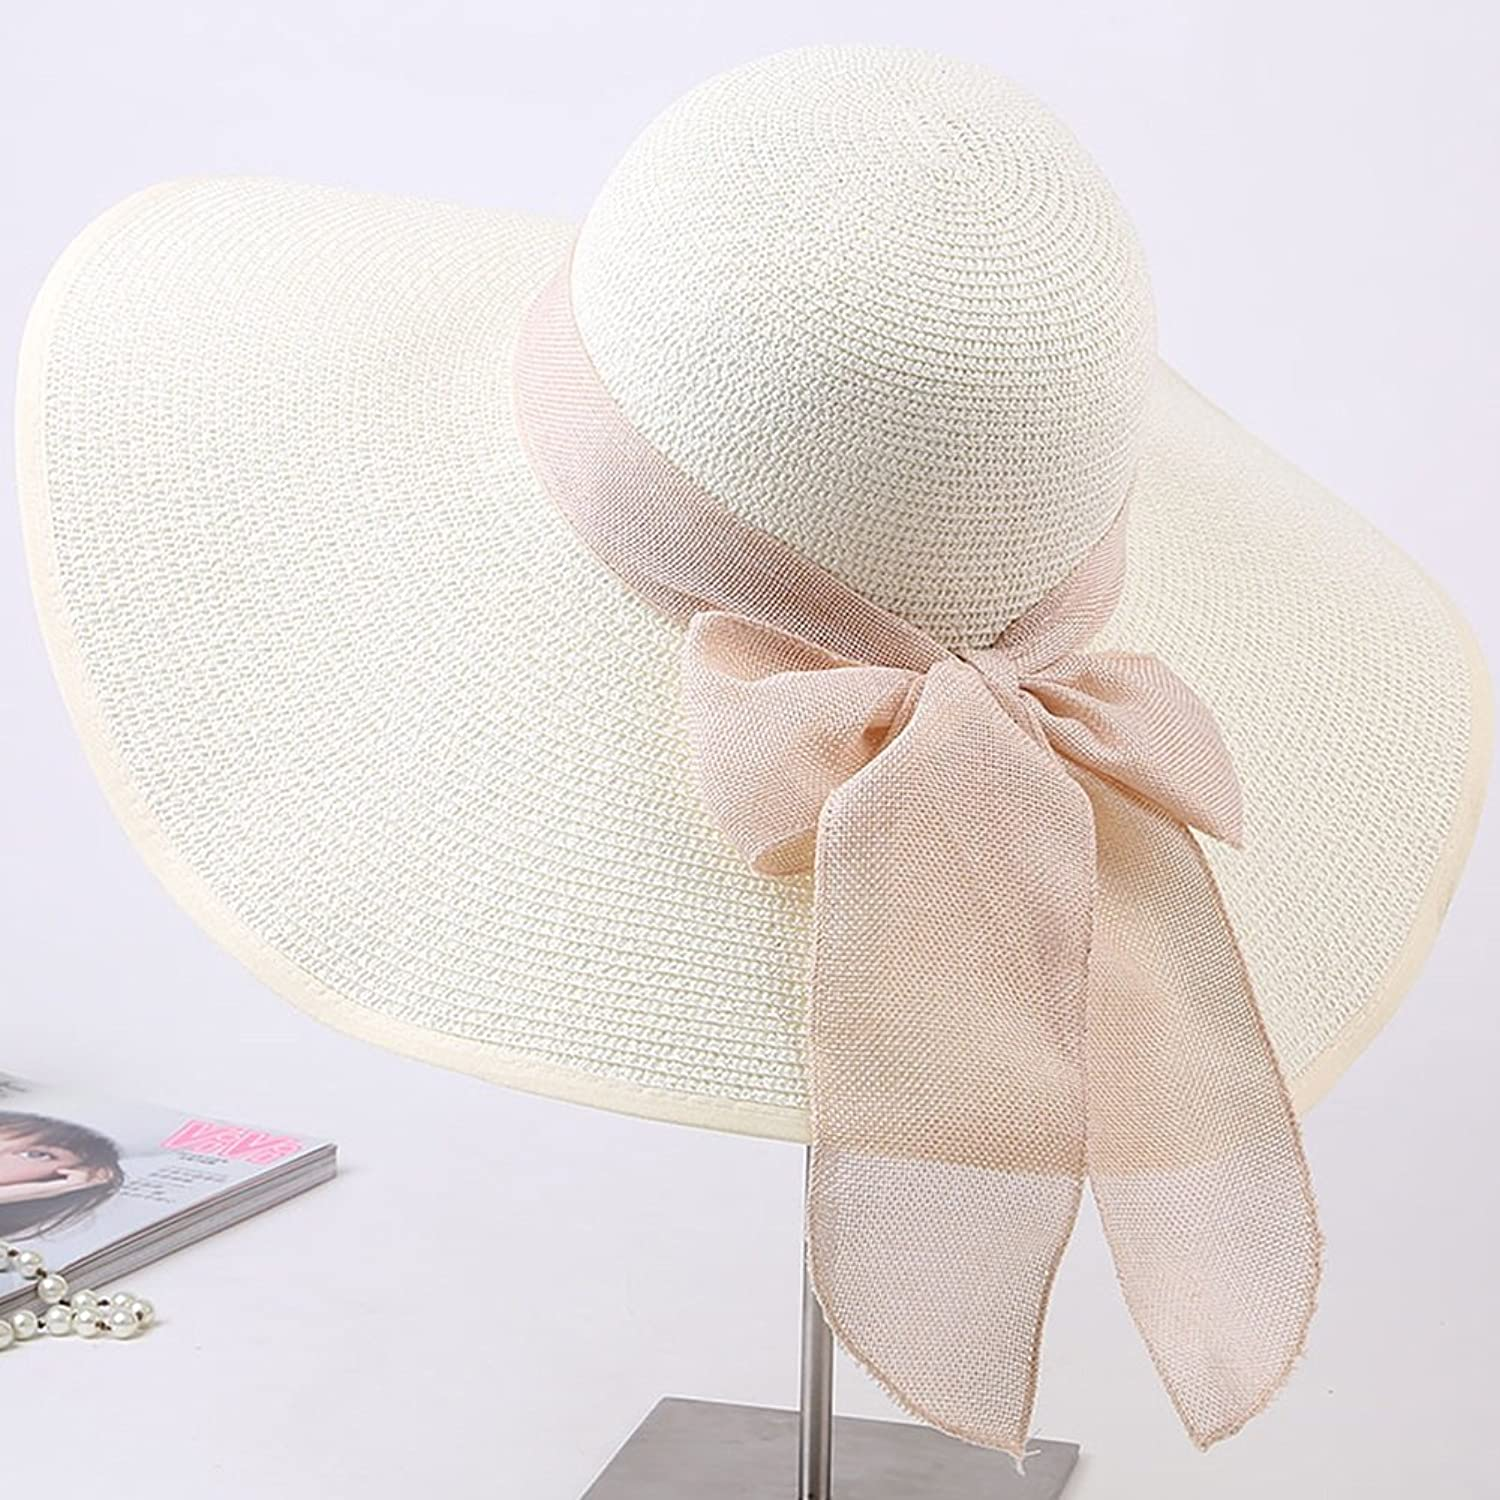 YD Hat Summer Hat, Women Sun Hat Wide Brim Sunscreen Straw Cap Hand Knitting Floppy Foldable Packable Summer, 17 colors Optional    (color   12 )